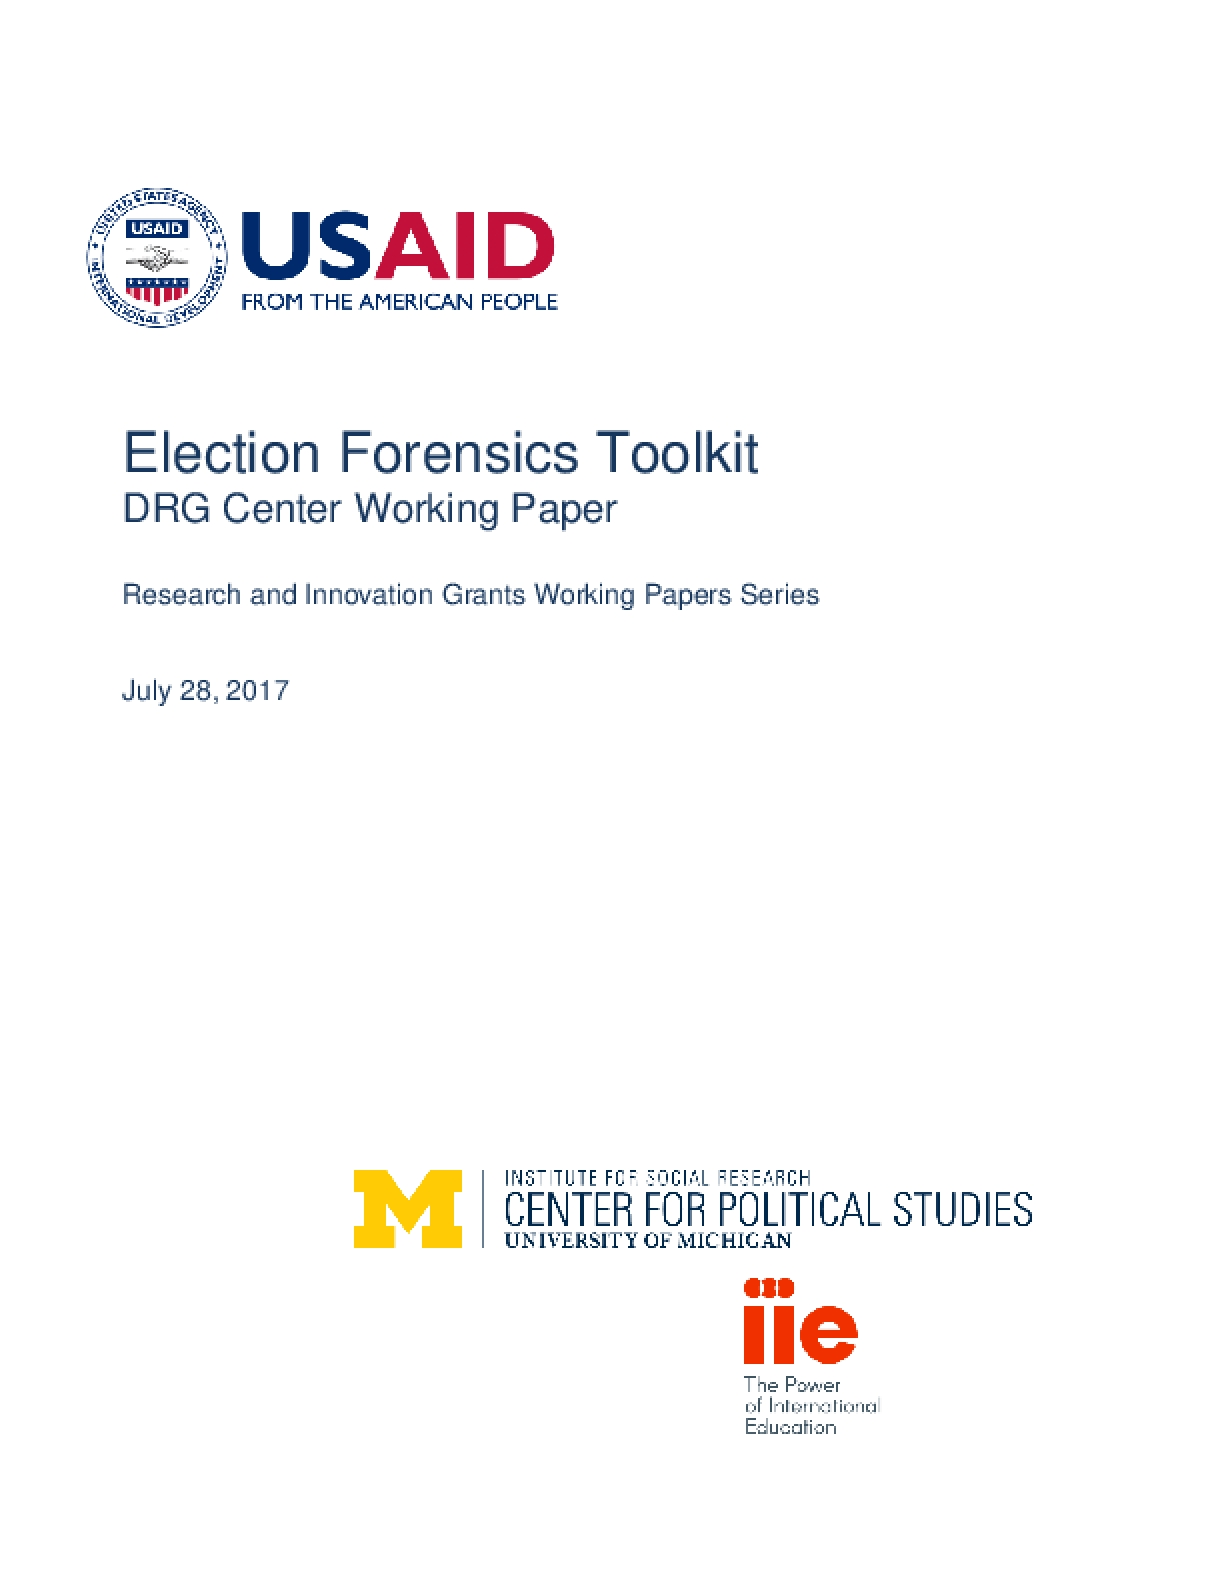 Election Forensics Toolkit DRG Center Working Paper